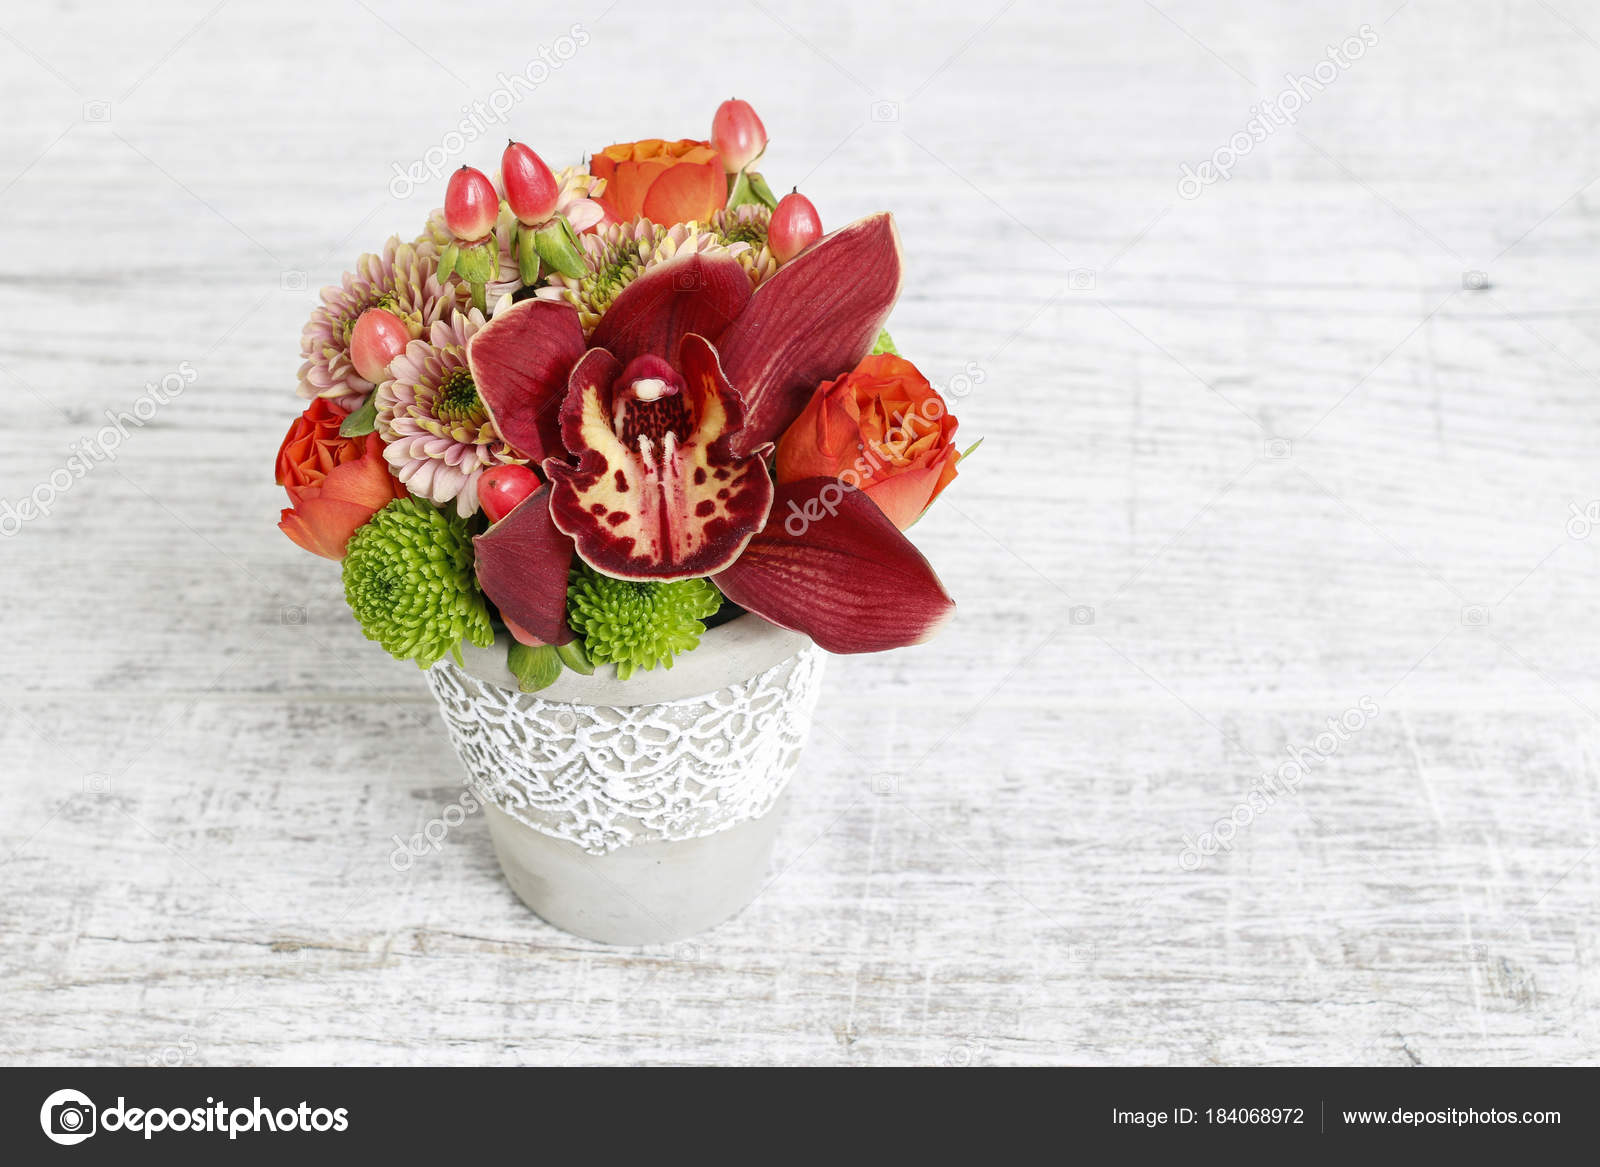 How To Make Floral Arrangement For Grandparents Day Tutorial